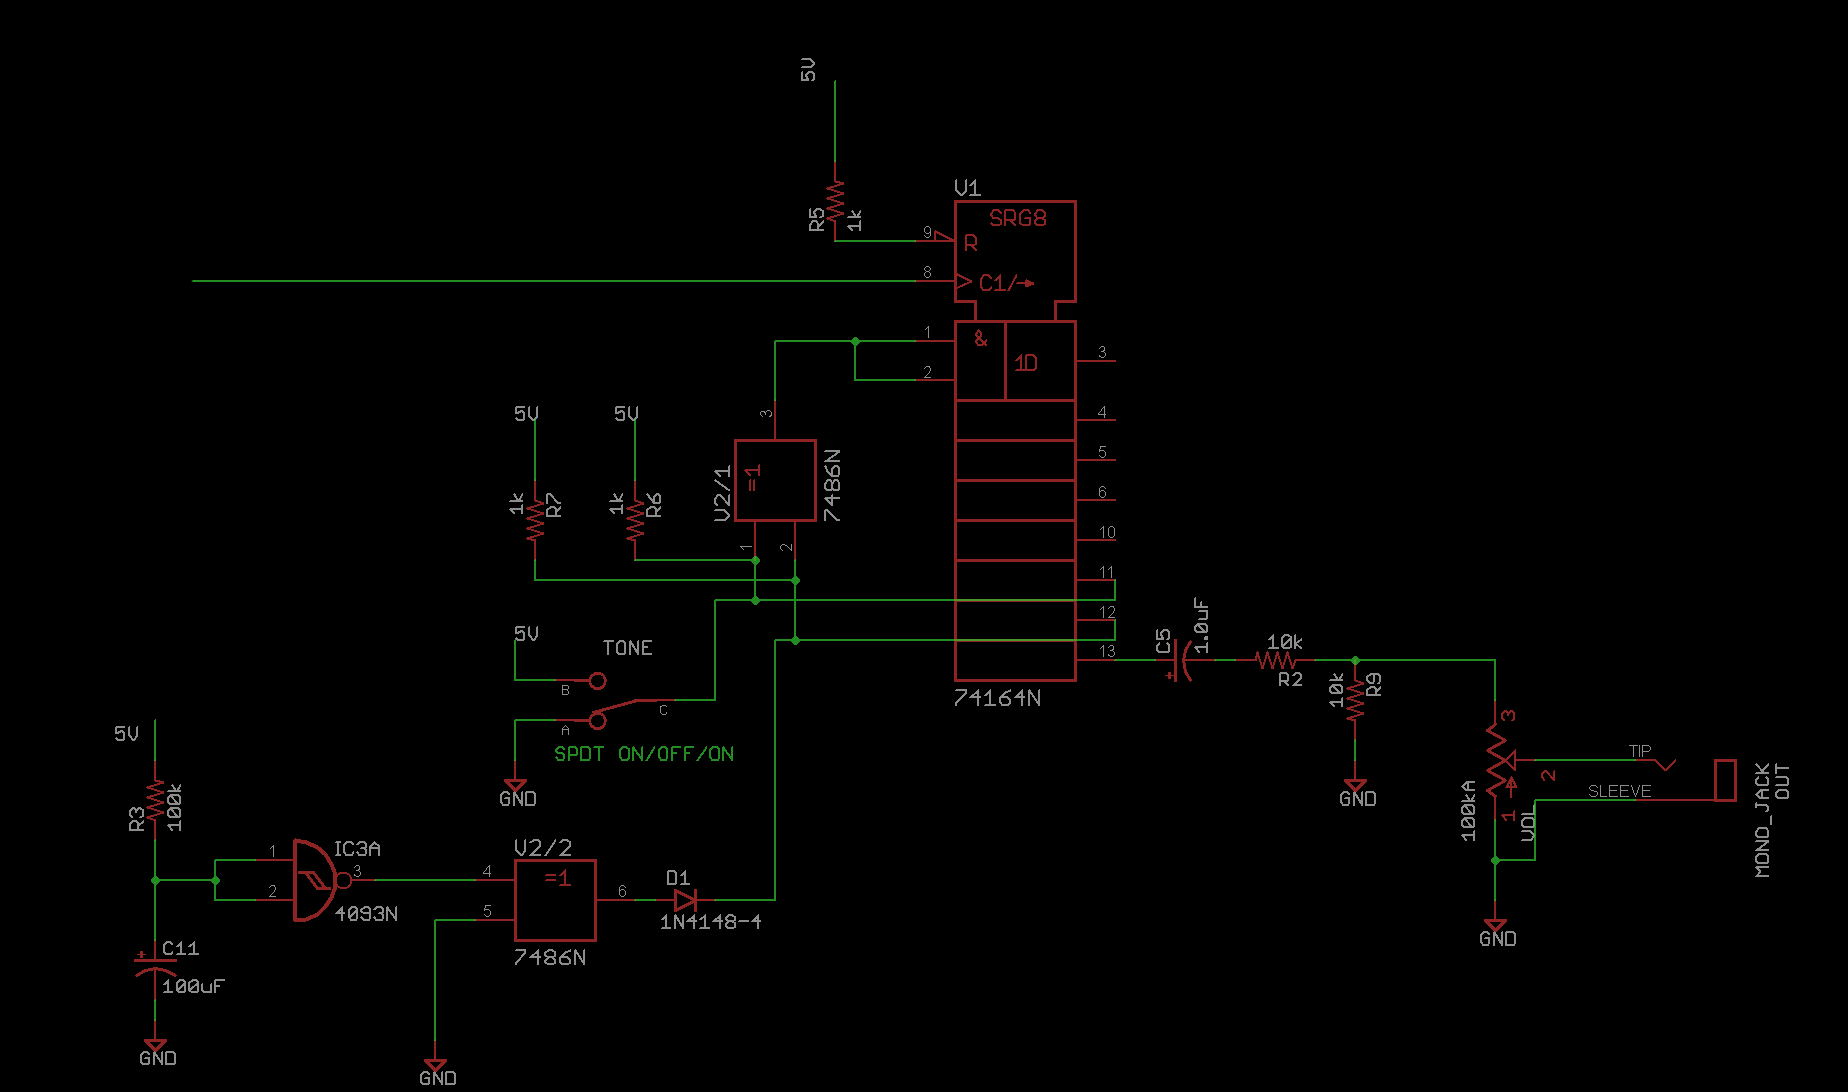 Atari Punk Junk Console Diy Audio Circuits Digital Voice Record And Playback Circuit Schematic The Main Noise Generator For Our Basic At Play Here Is A Linear Feedback Shift Register Lfsr Test Widely Used In